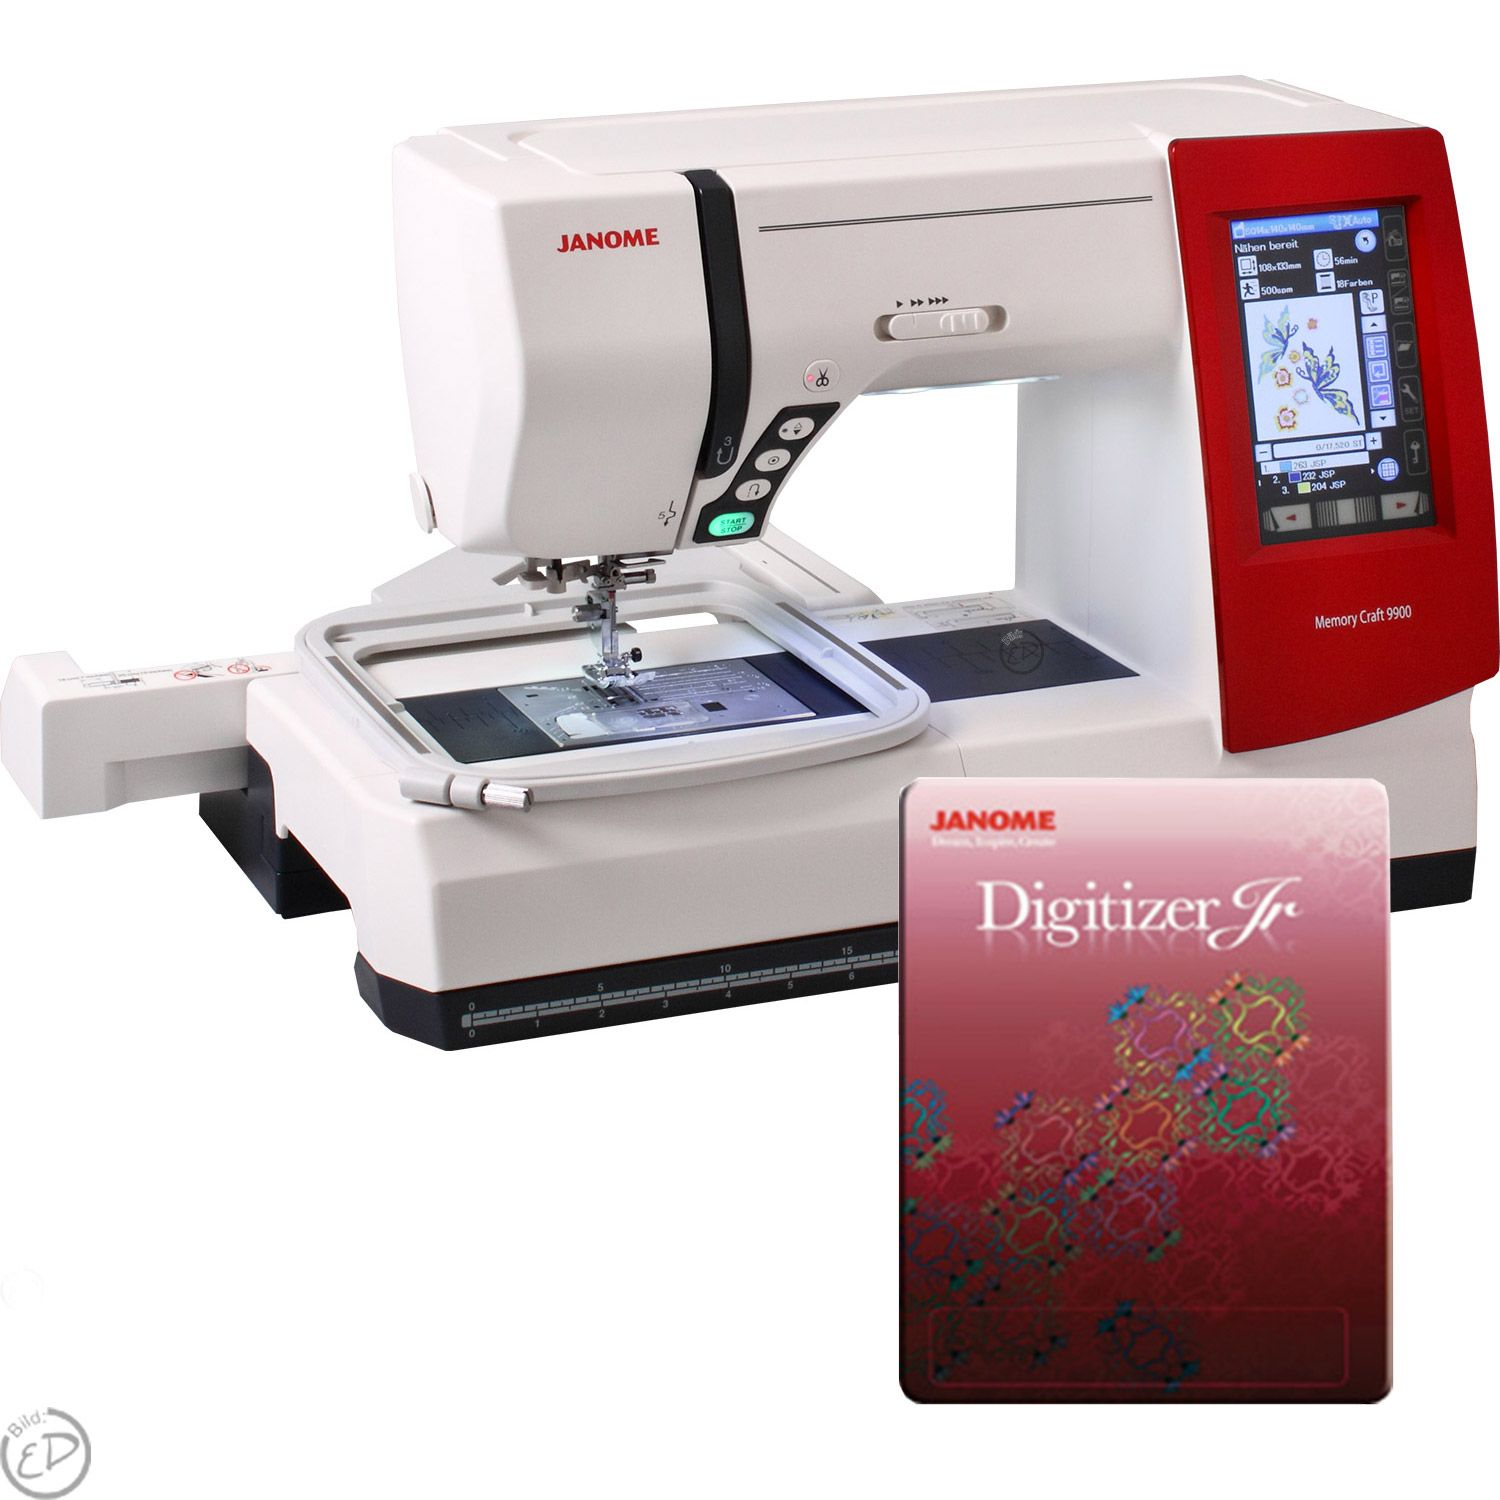 Janome memory craft 9900 - Janome Memory Craft 9900 Incl Digitizer Junior 4 5